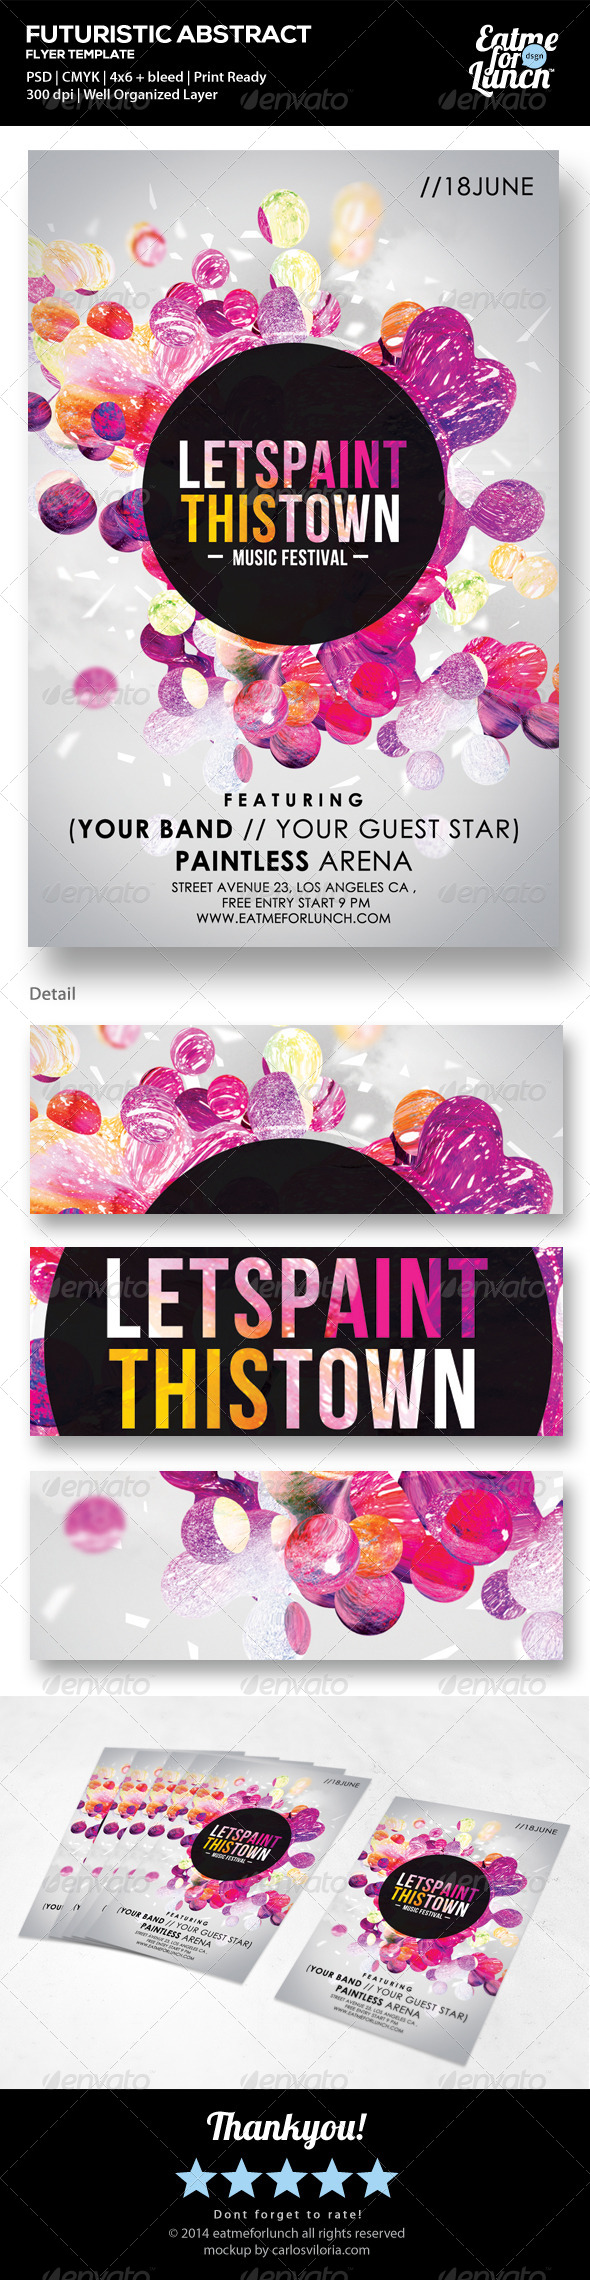 Futuristic Abstract Flyer - Lets Paint This Town  - Events Flyers